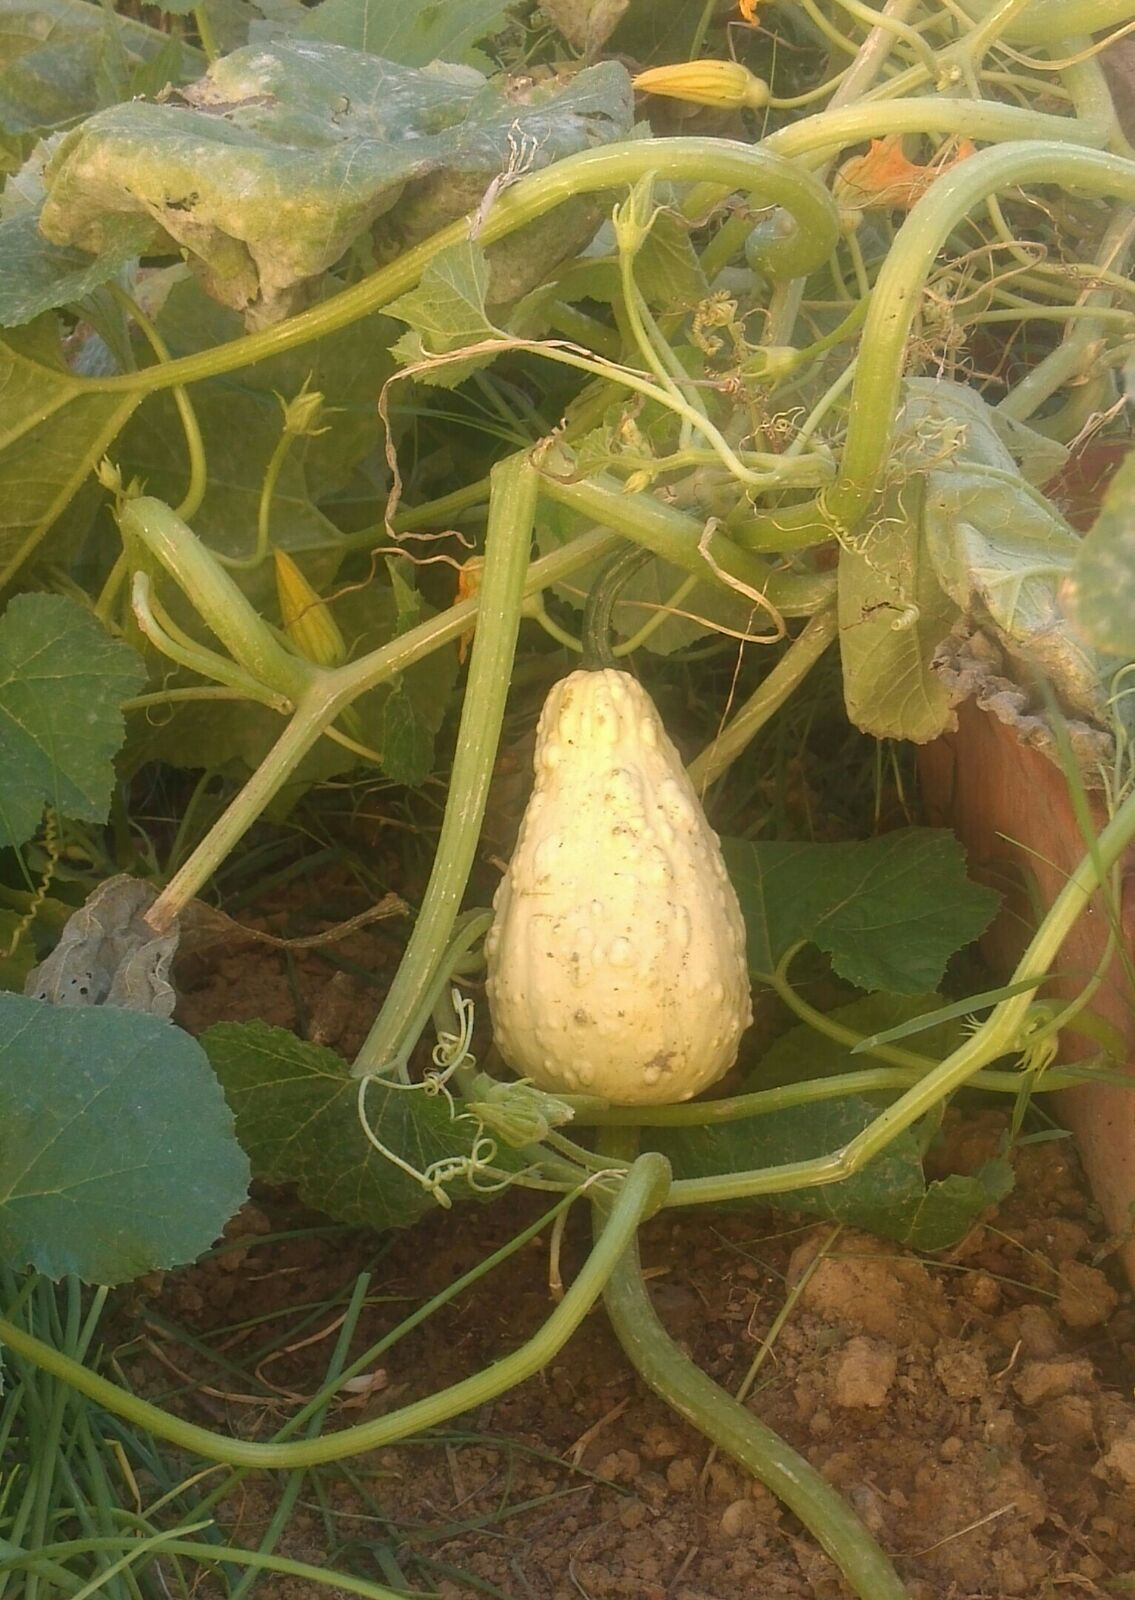 What is this vegetable?